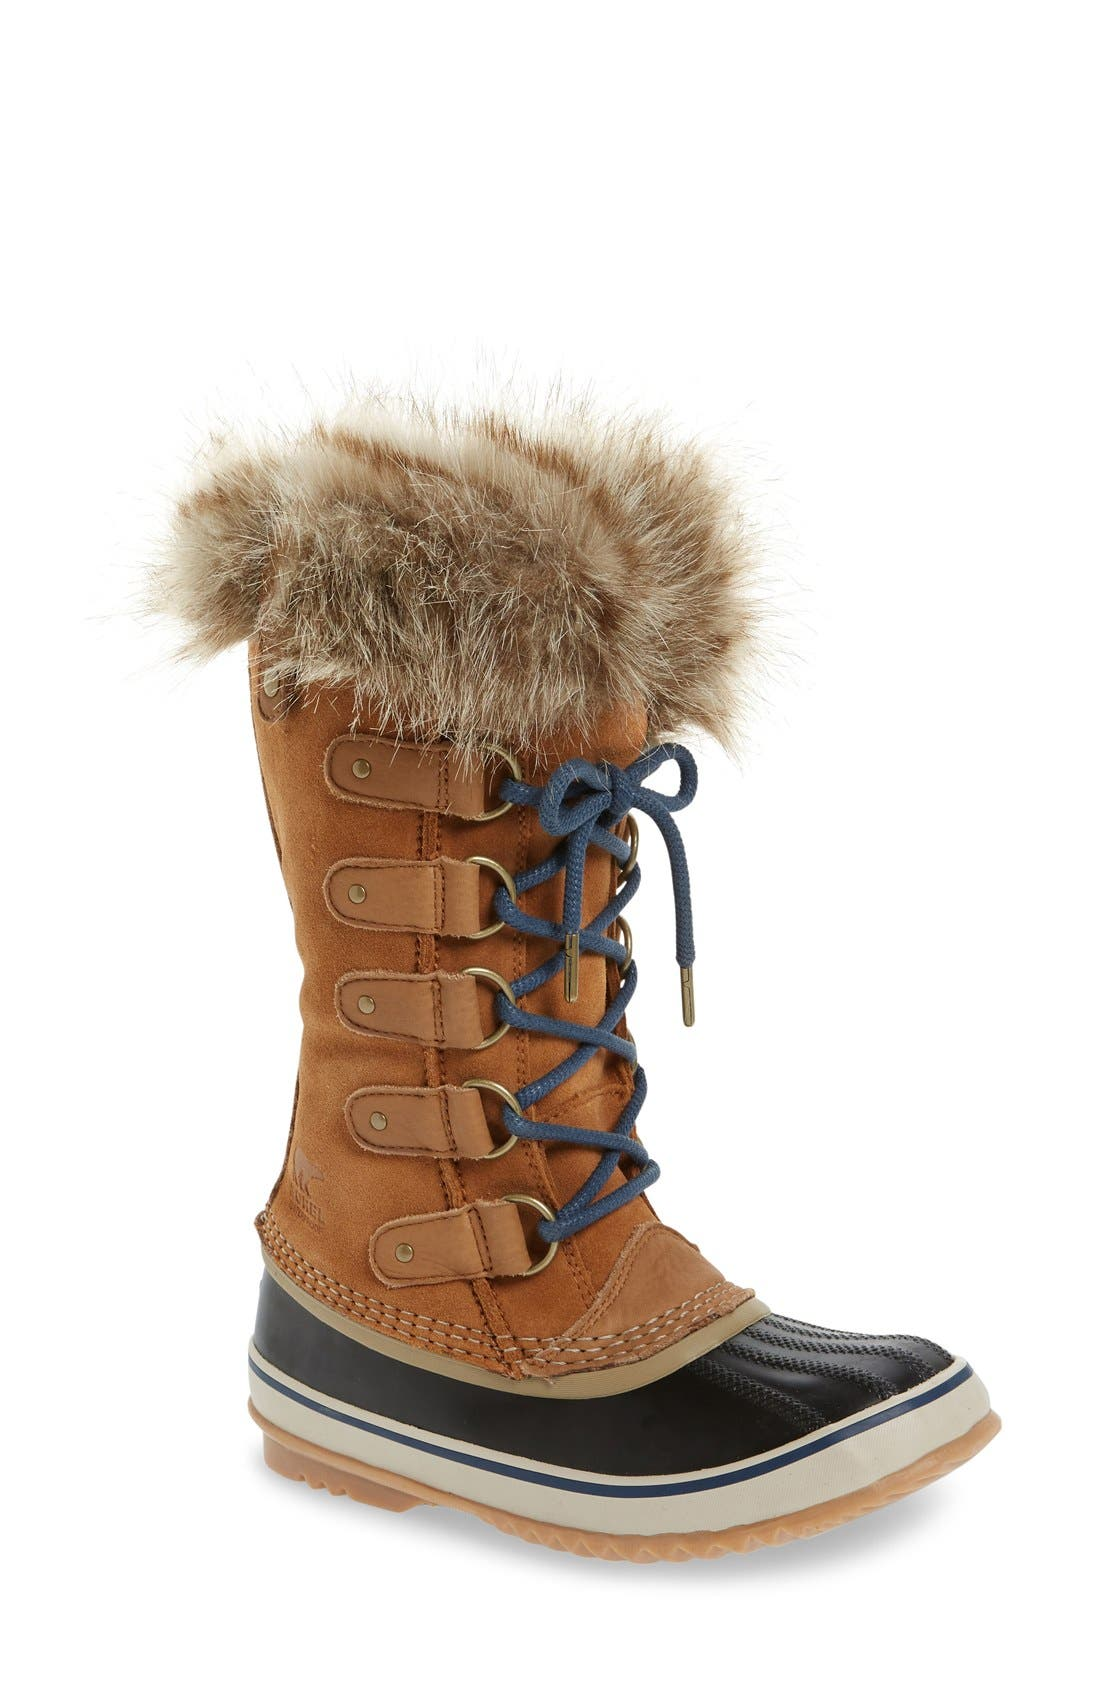 Snow Winter Boots & Weatherproof Boots for Women | Nordstrom